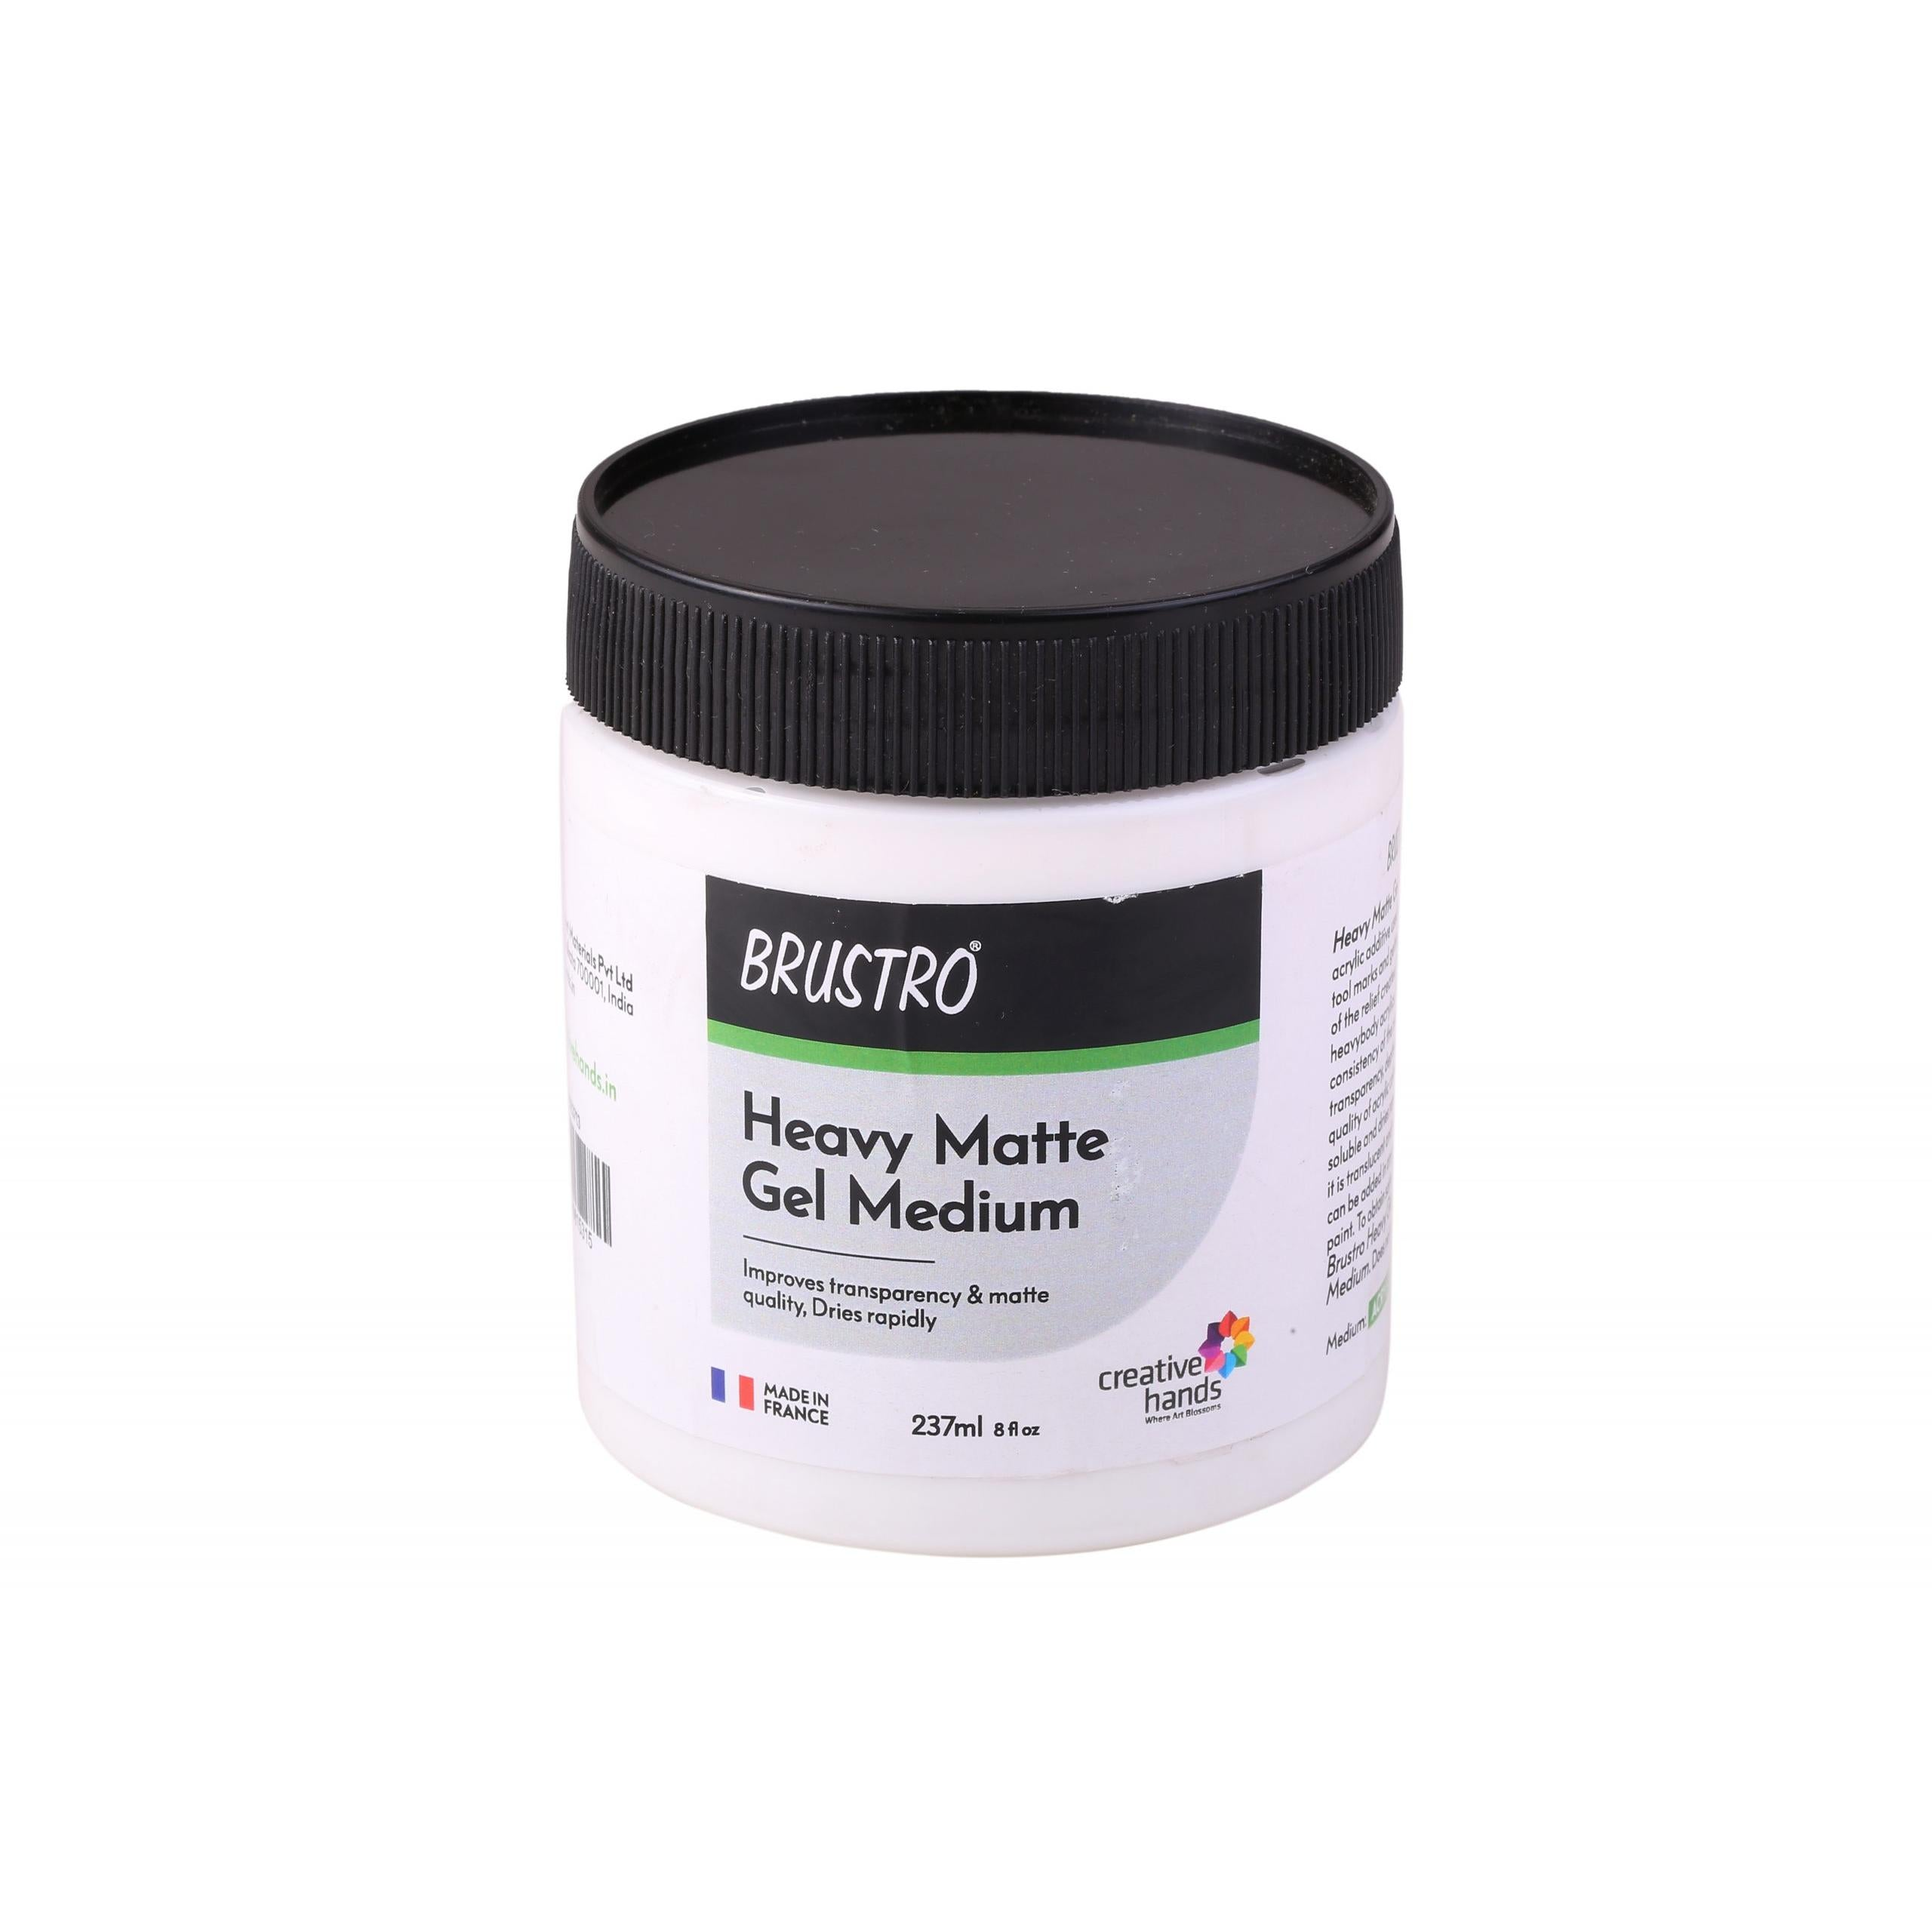 Brustro Professional Heavy Matte Gel Medium 237ml